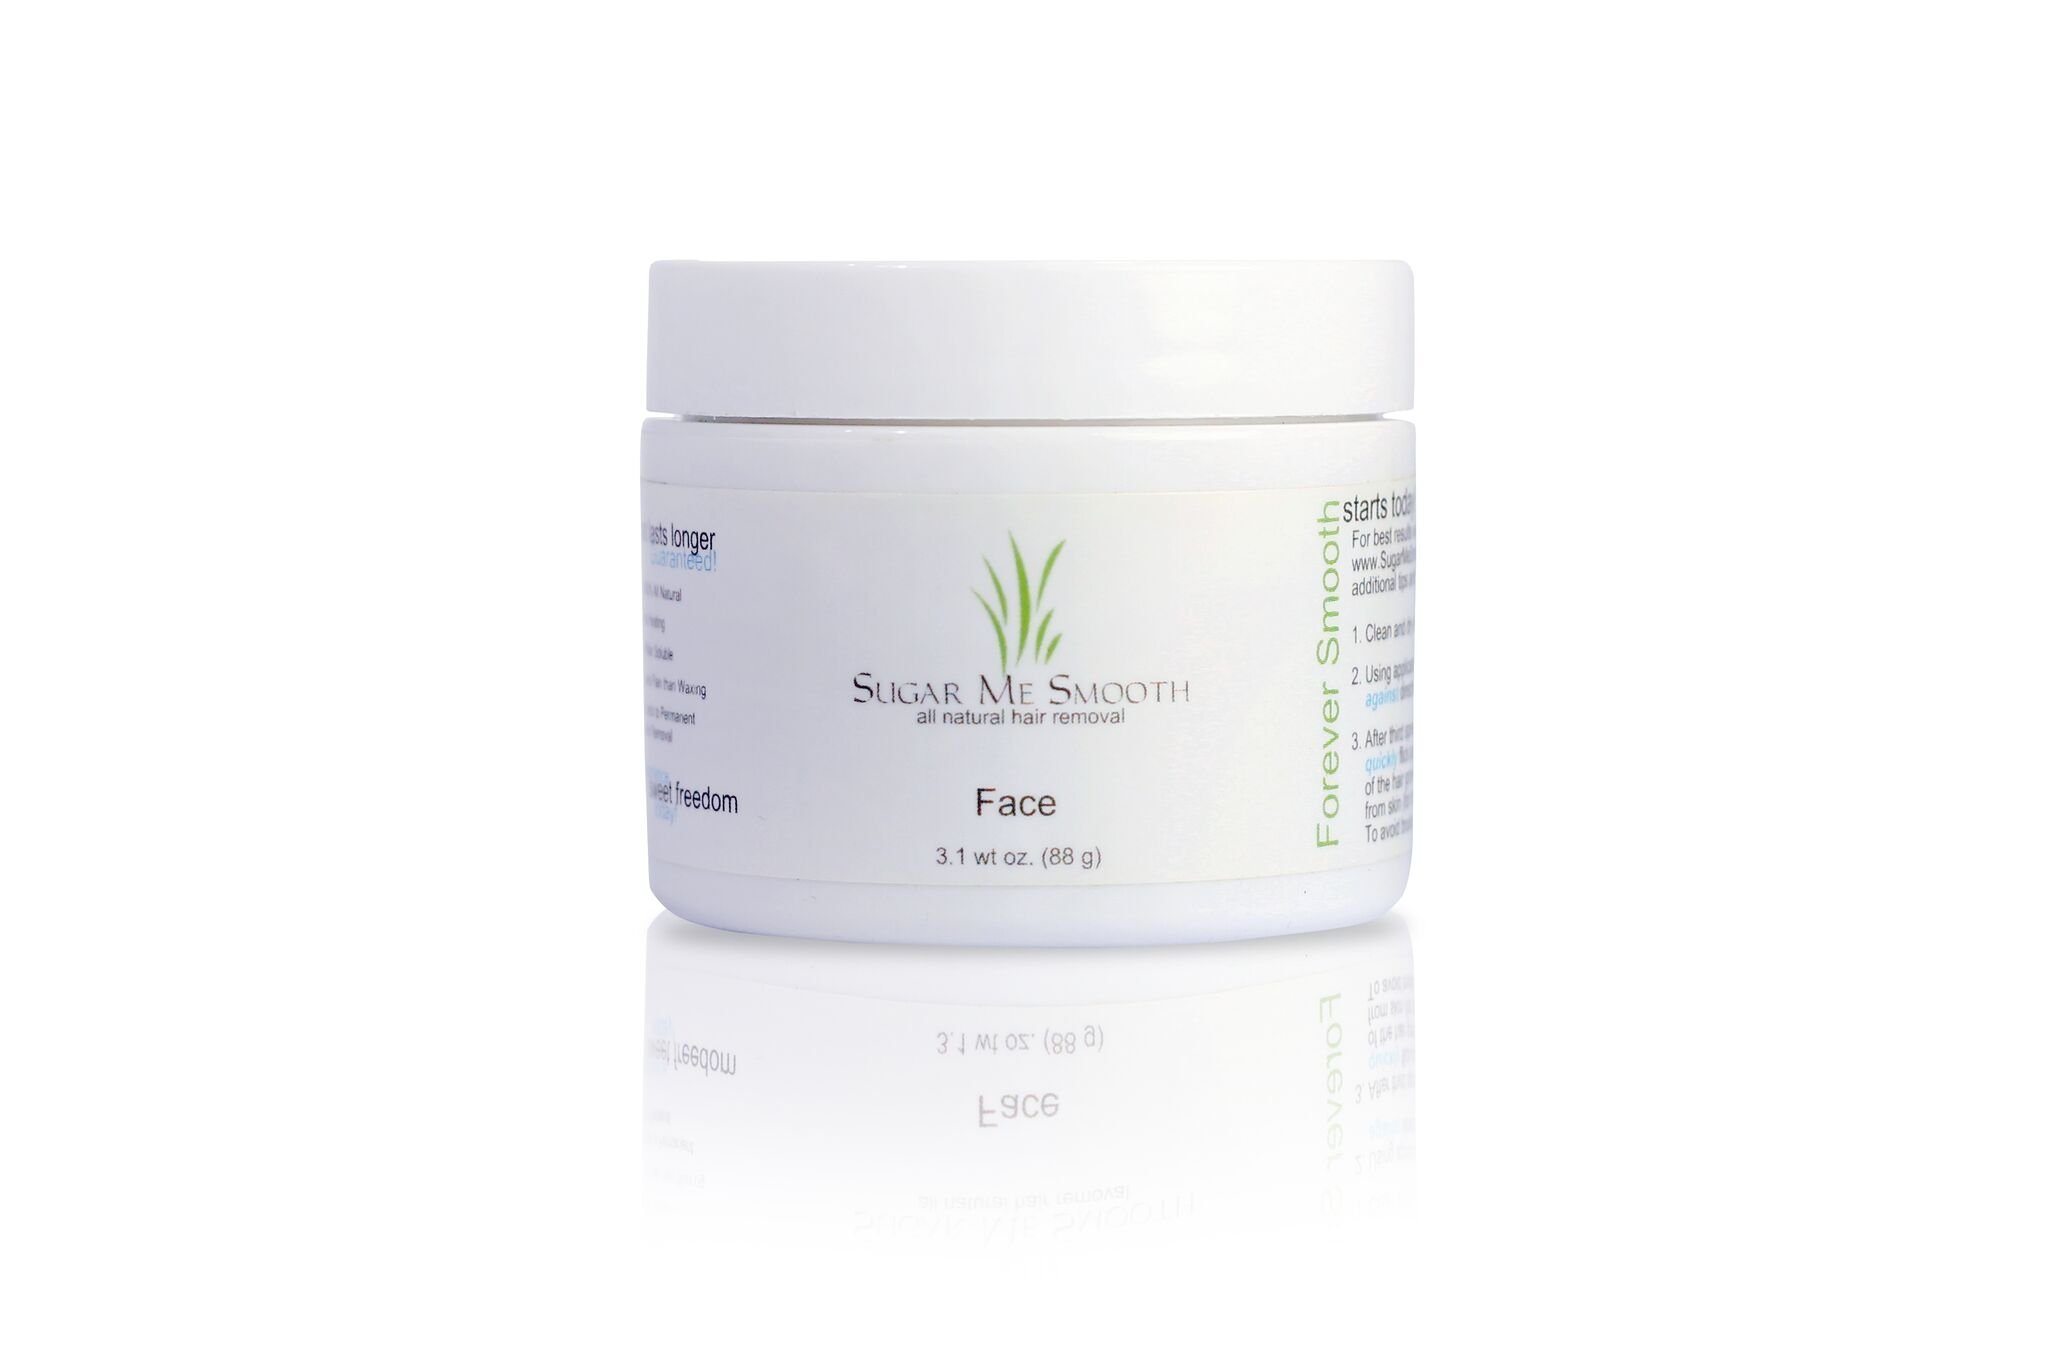 Sugar Me Smooth Face Hair Removal